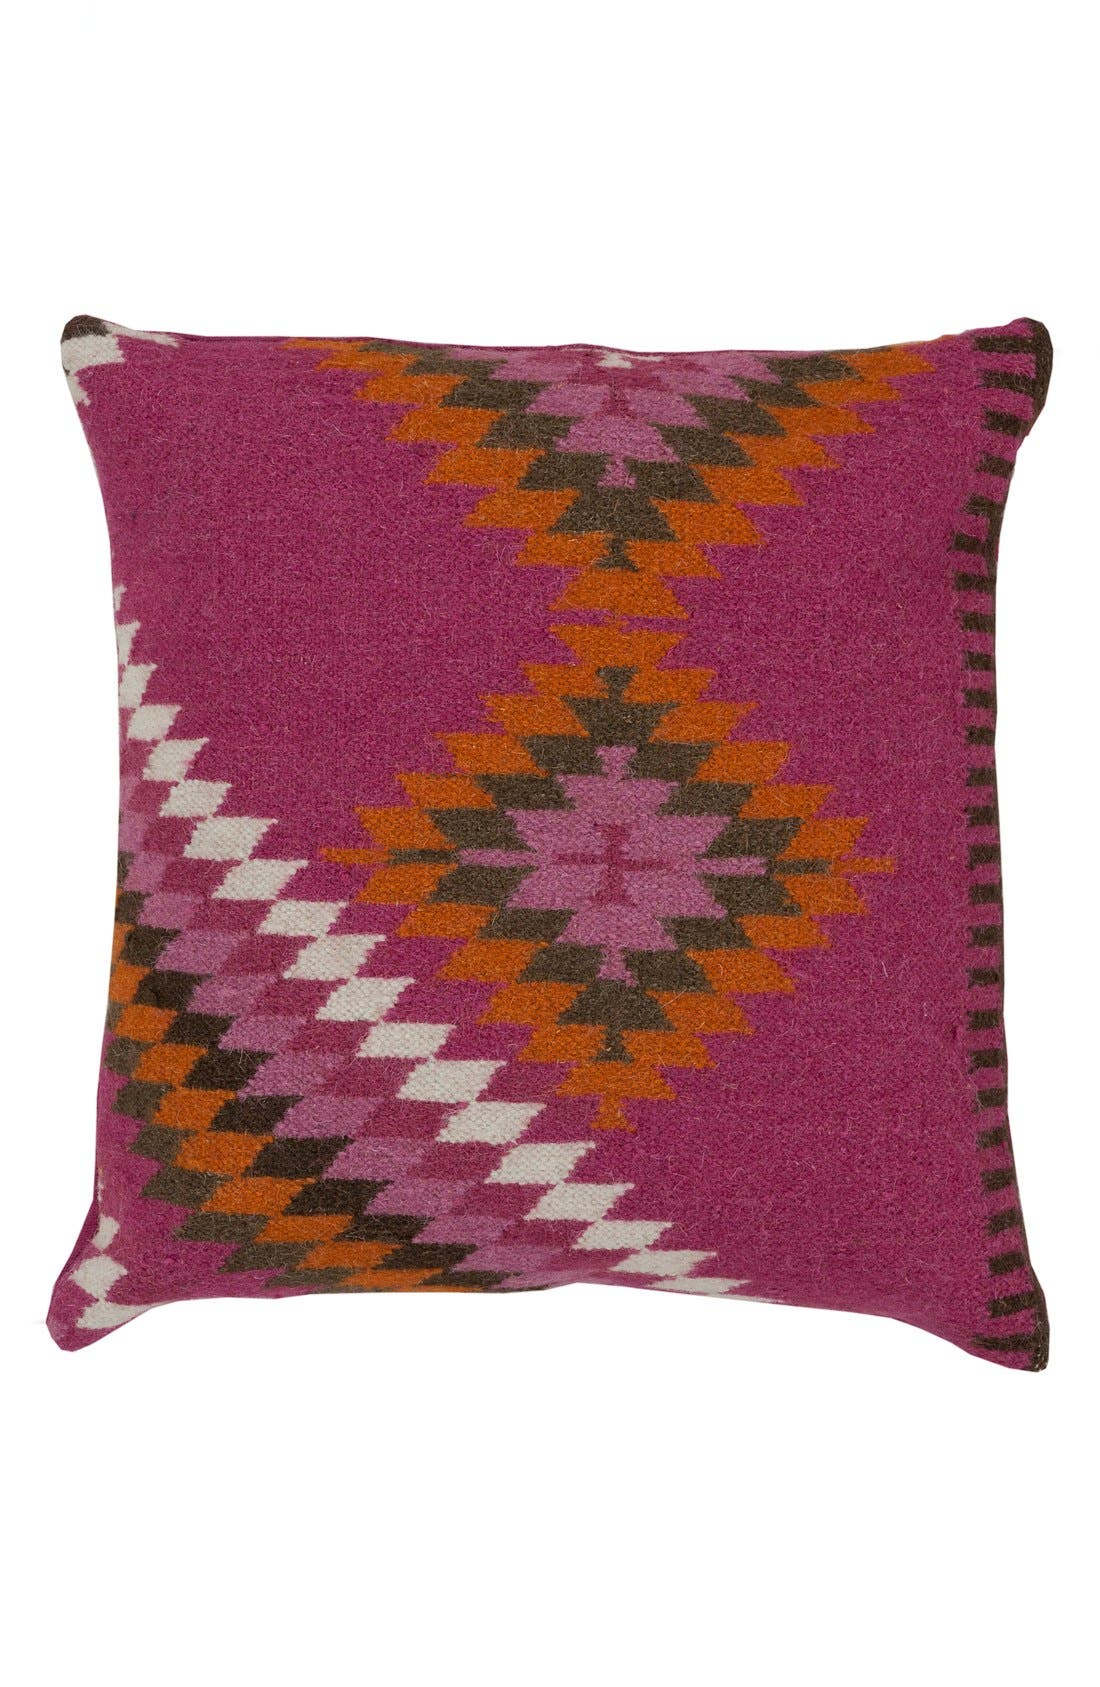 Main Image - Surya Home Kilim Wool Accent Pillow Cover